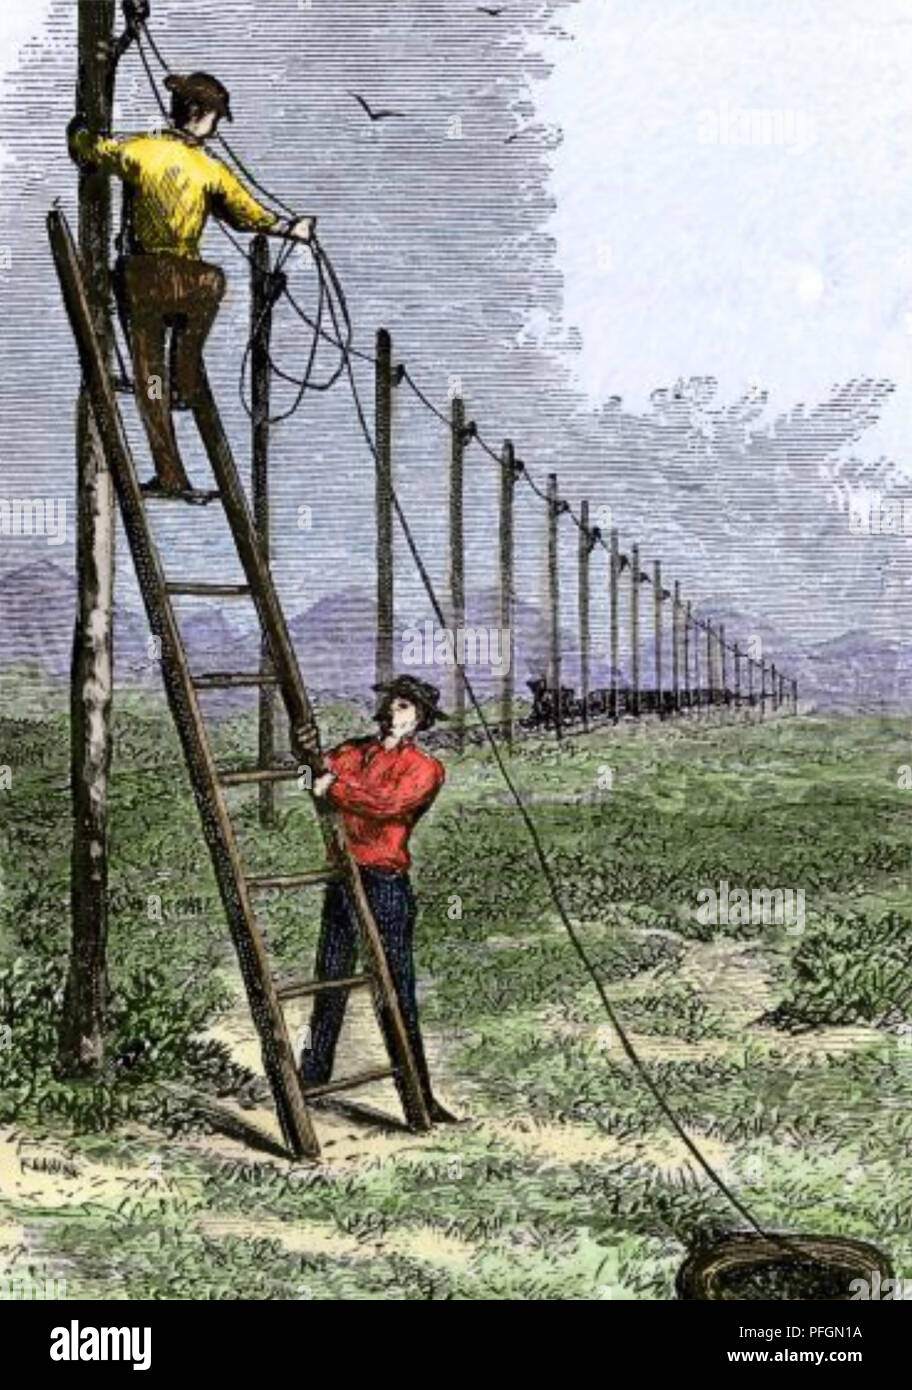 LINEMEN STRINGING TELEGRAPH WIRES along the Transcontinental railroad on the Great Plains of America in the 1860s as mandated in  the Pacific Railway Act of 1862 - Stock Image